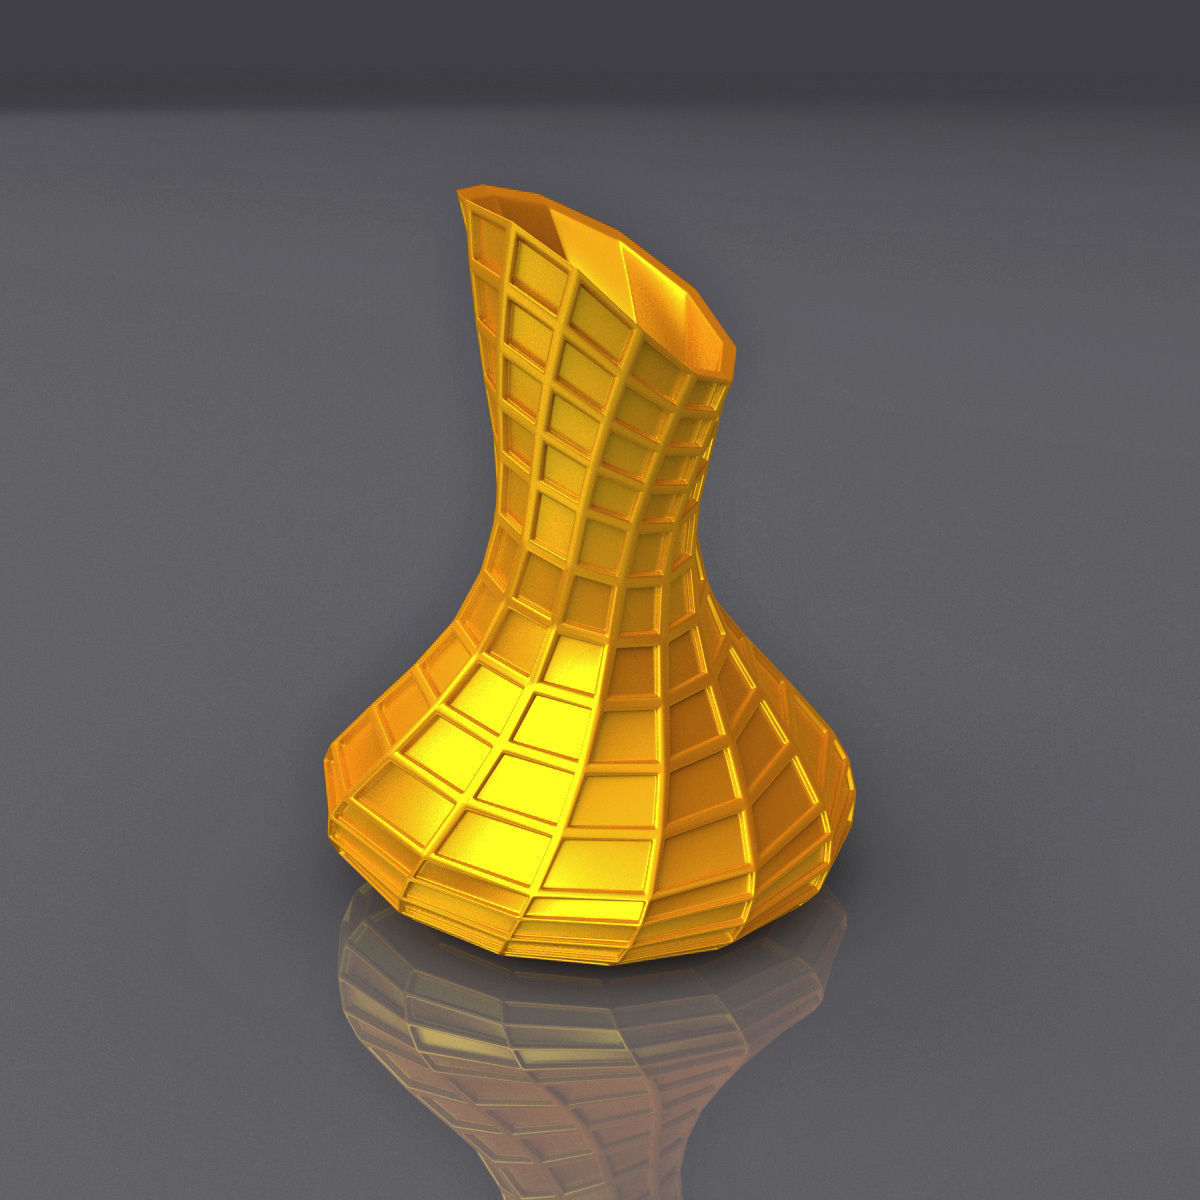 Square Perforated Surface Vase Design 3D Printing Model